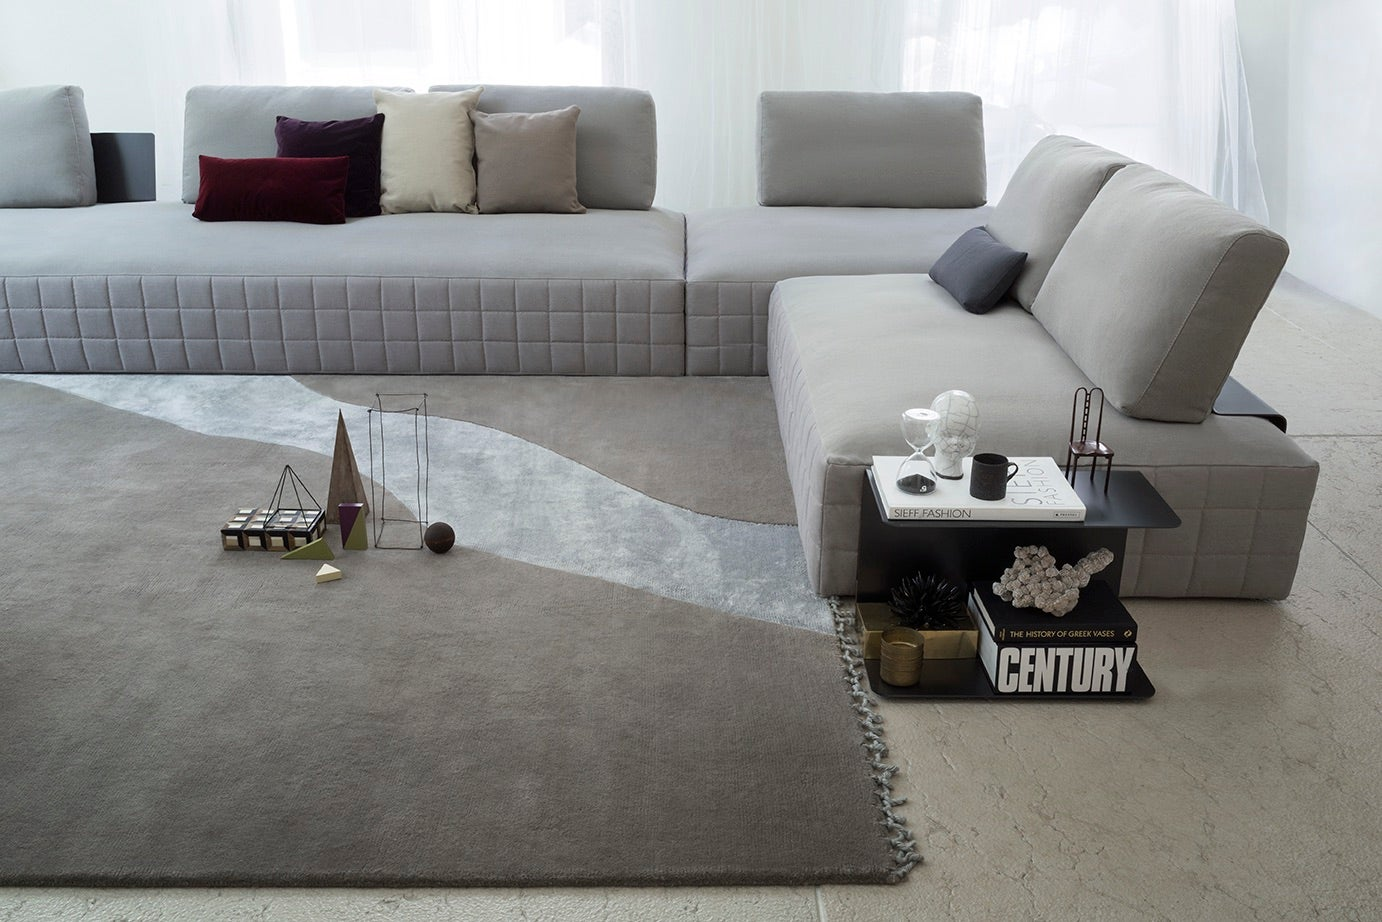 Italian Modular Sectional Sofa, Modern Design Made In Italy For Sale At  1stdibs